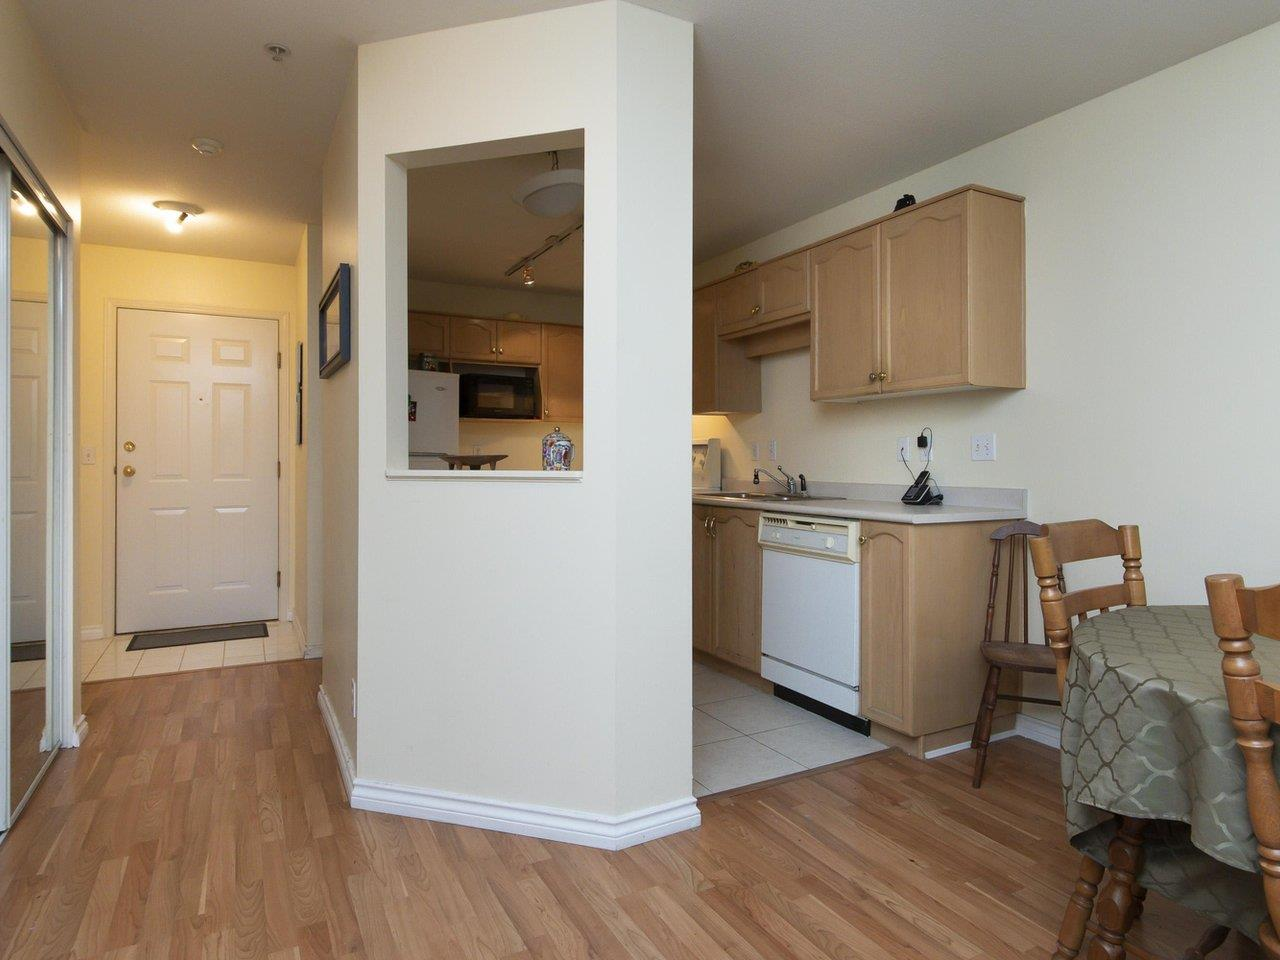 301 2615 JANE STREET - Central Pt Coquitlam Apartment/Condo for sale, 1 Bedroom (R2447351) - #12